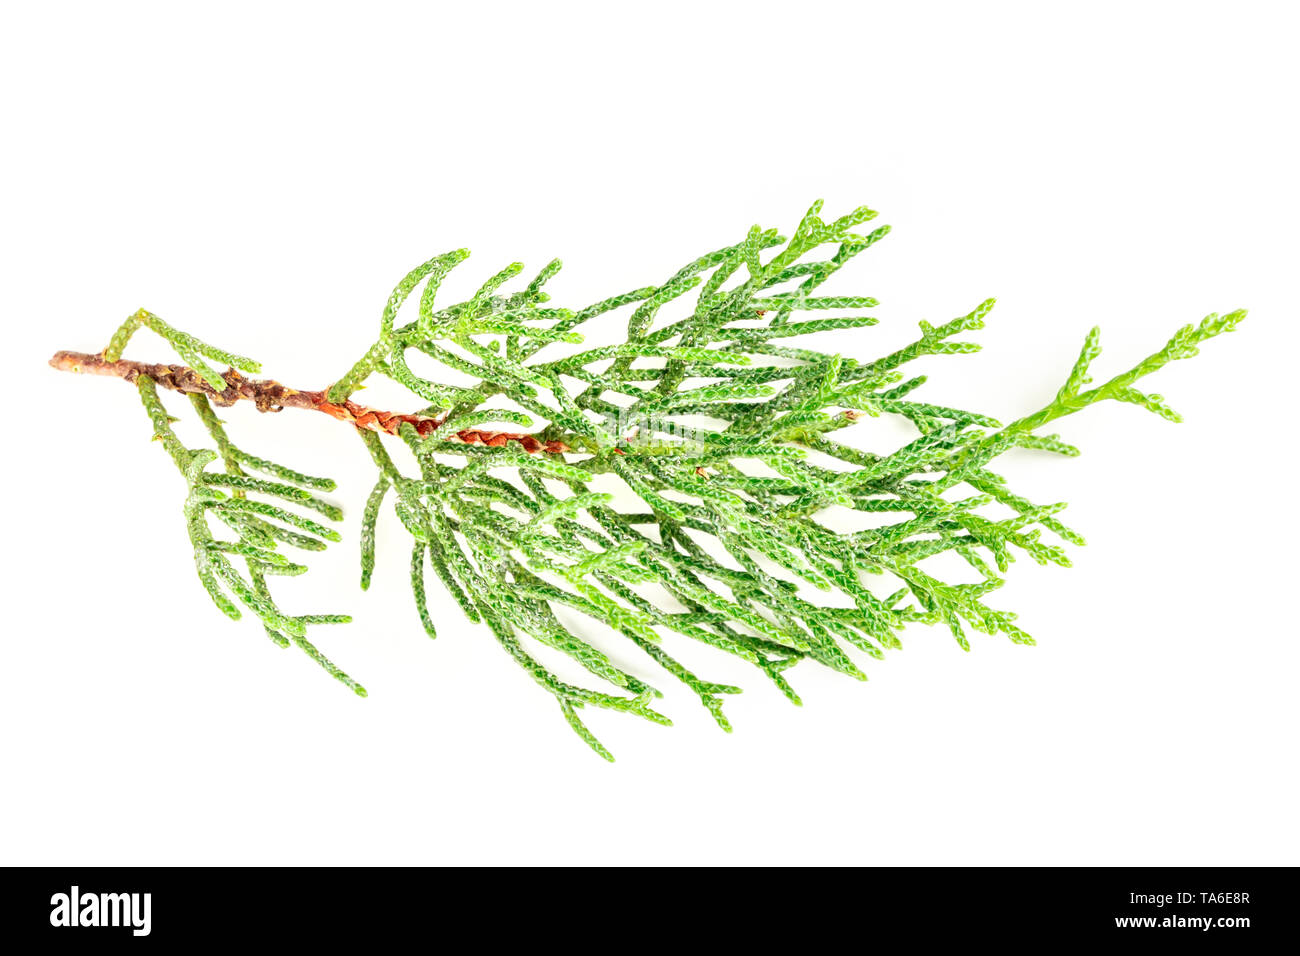 A photo of a green thuja branch on a white background - Stock Image